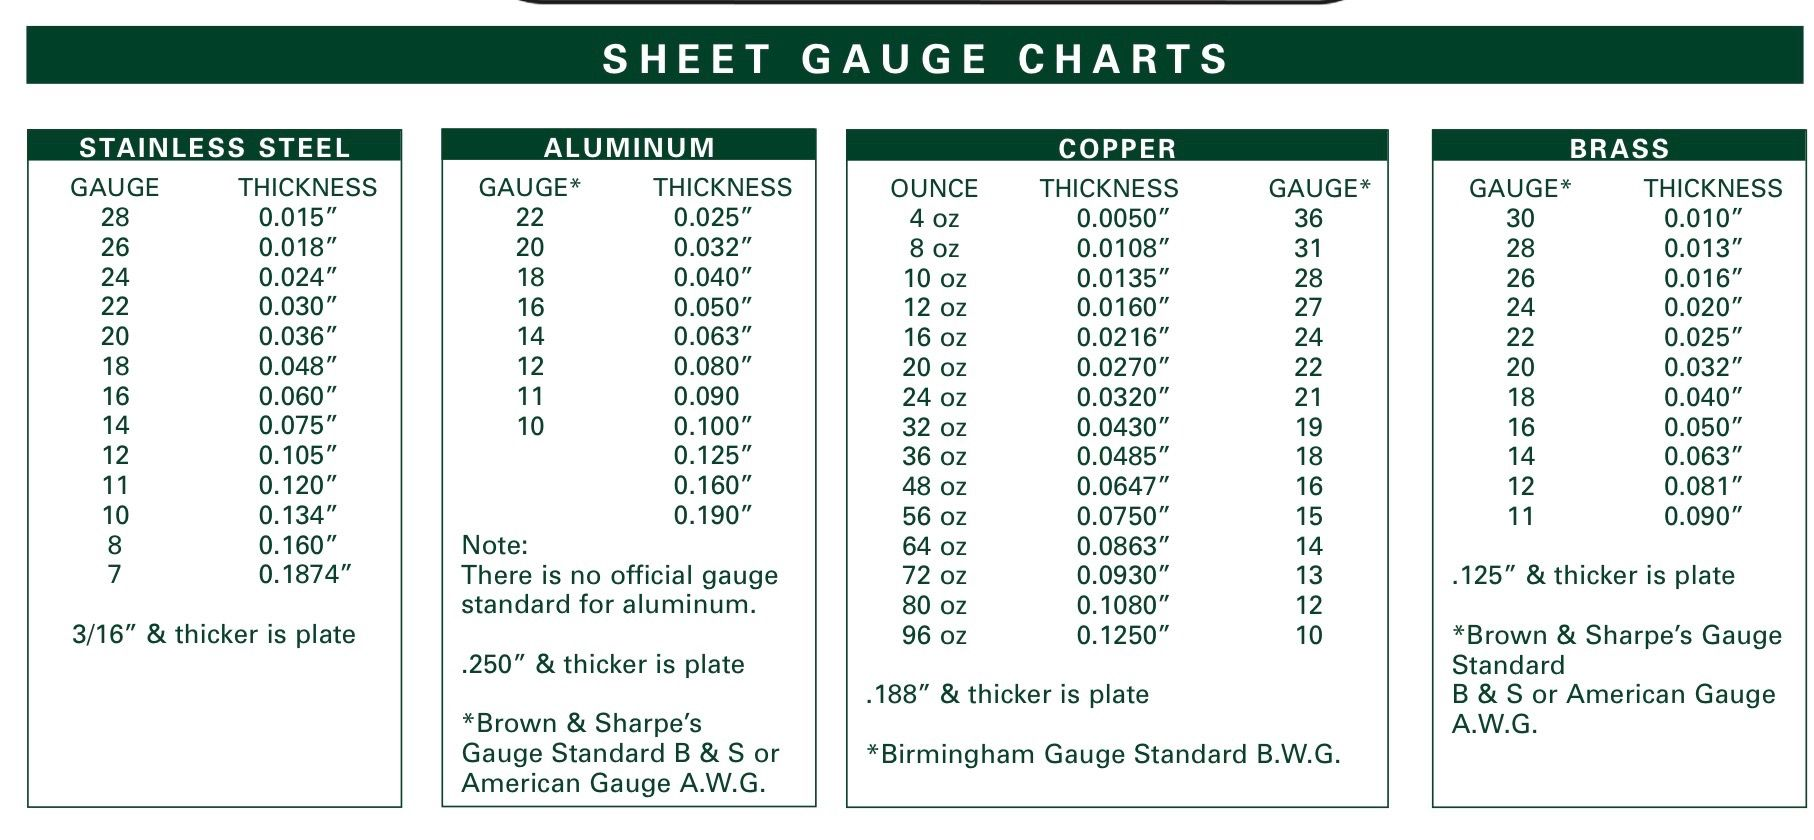 Pin By Laurie Simpson On Charts Sheet Metal Gauge Sheet Metal Shop Metal Gauge